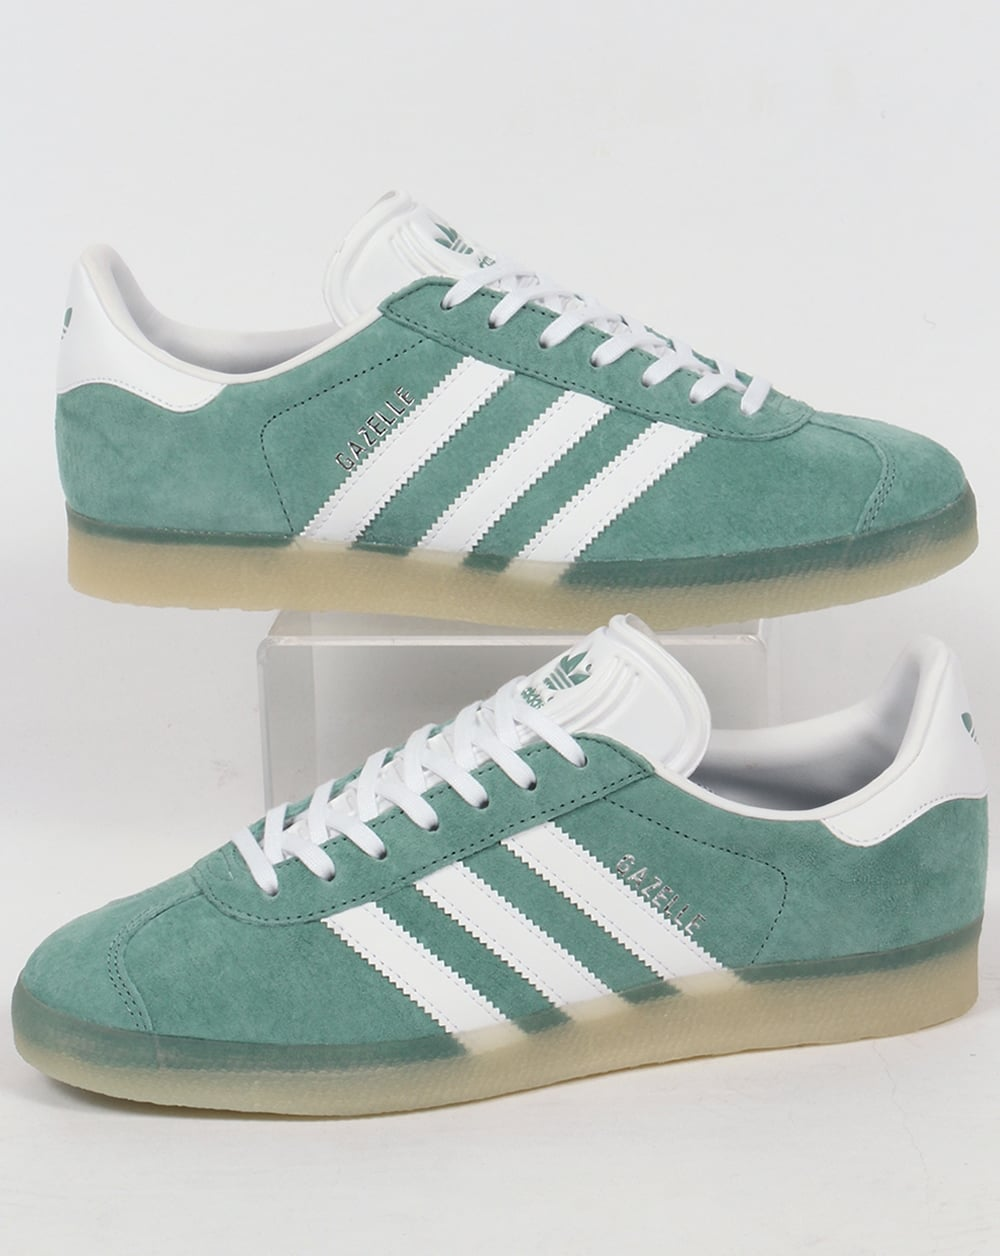 official photos 7e7e8 ad915 adidas Trainers Adidas Gazelle Trainers Green Steel Ice Gum